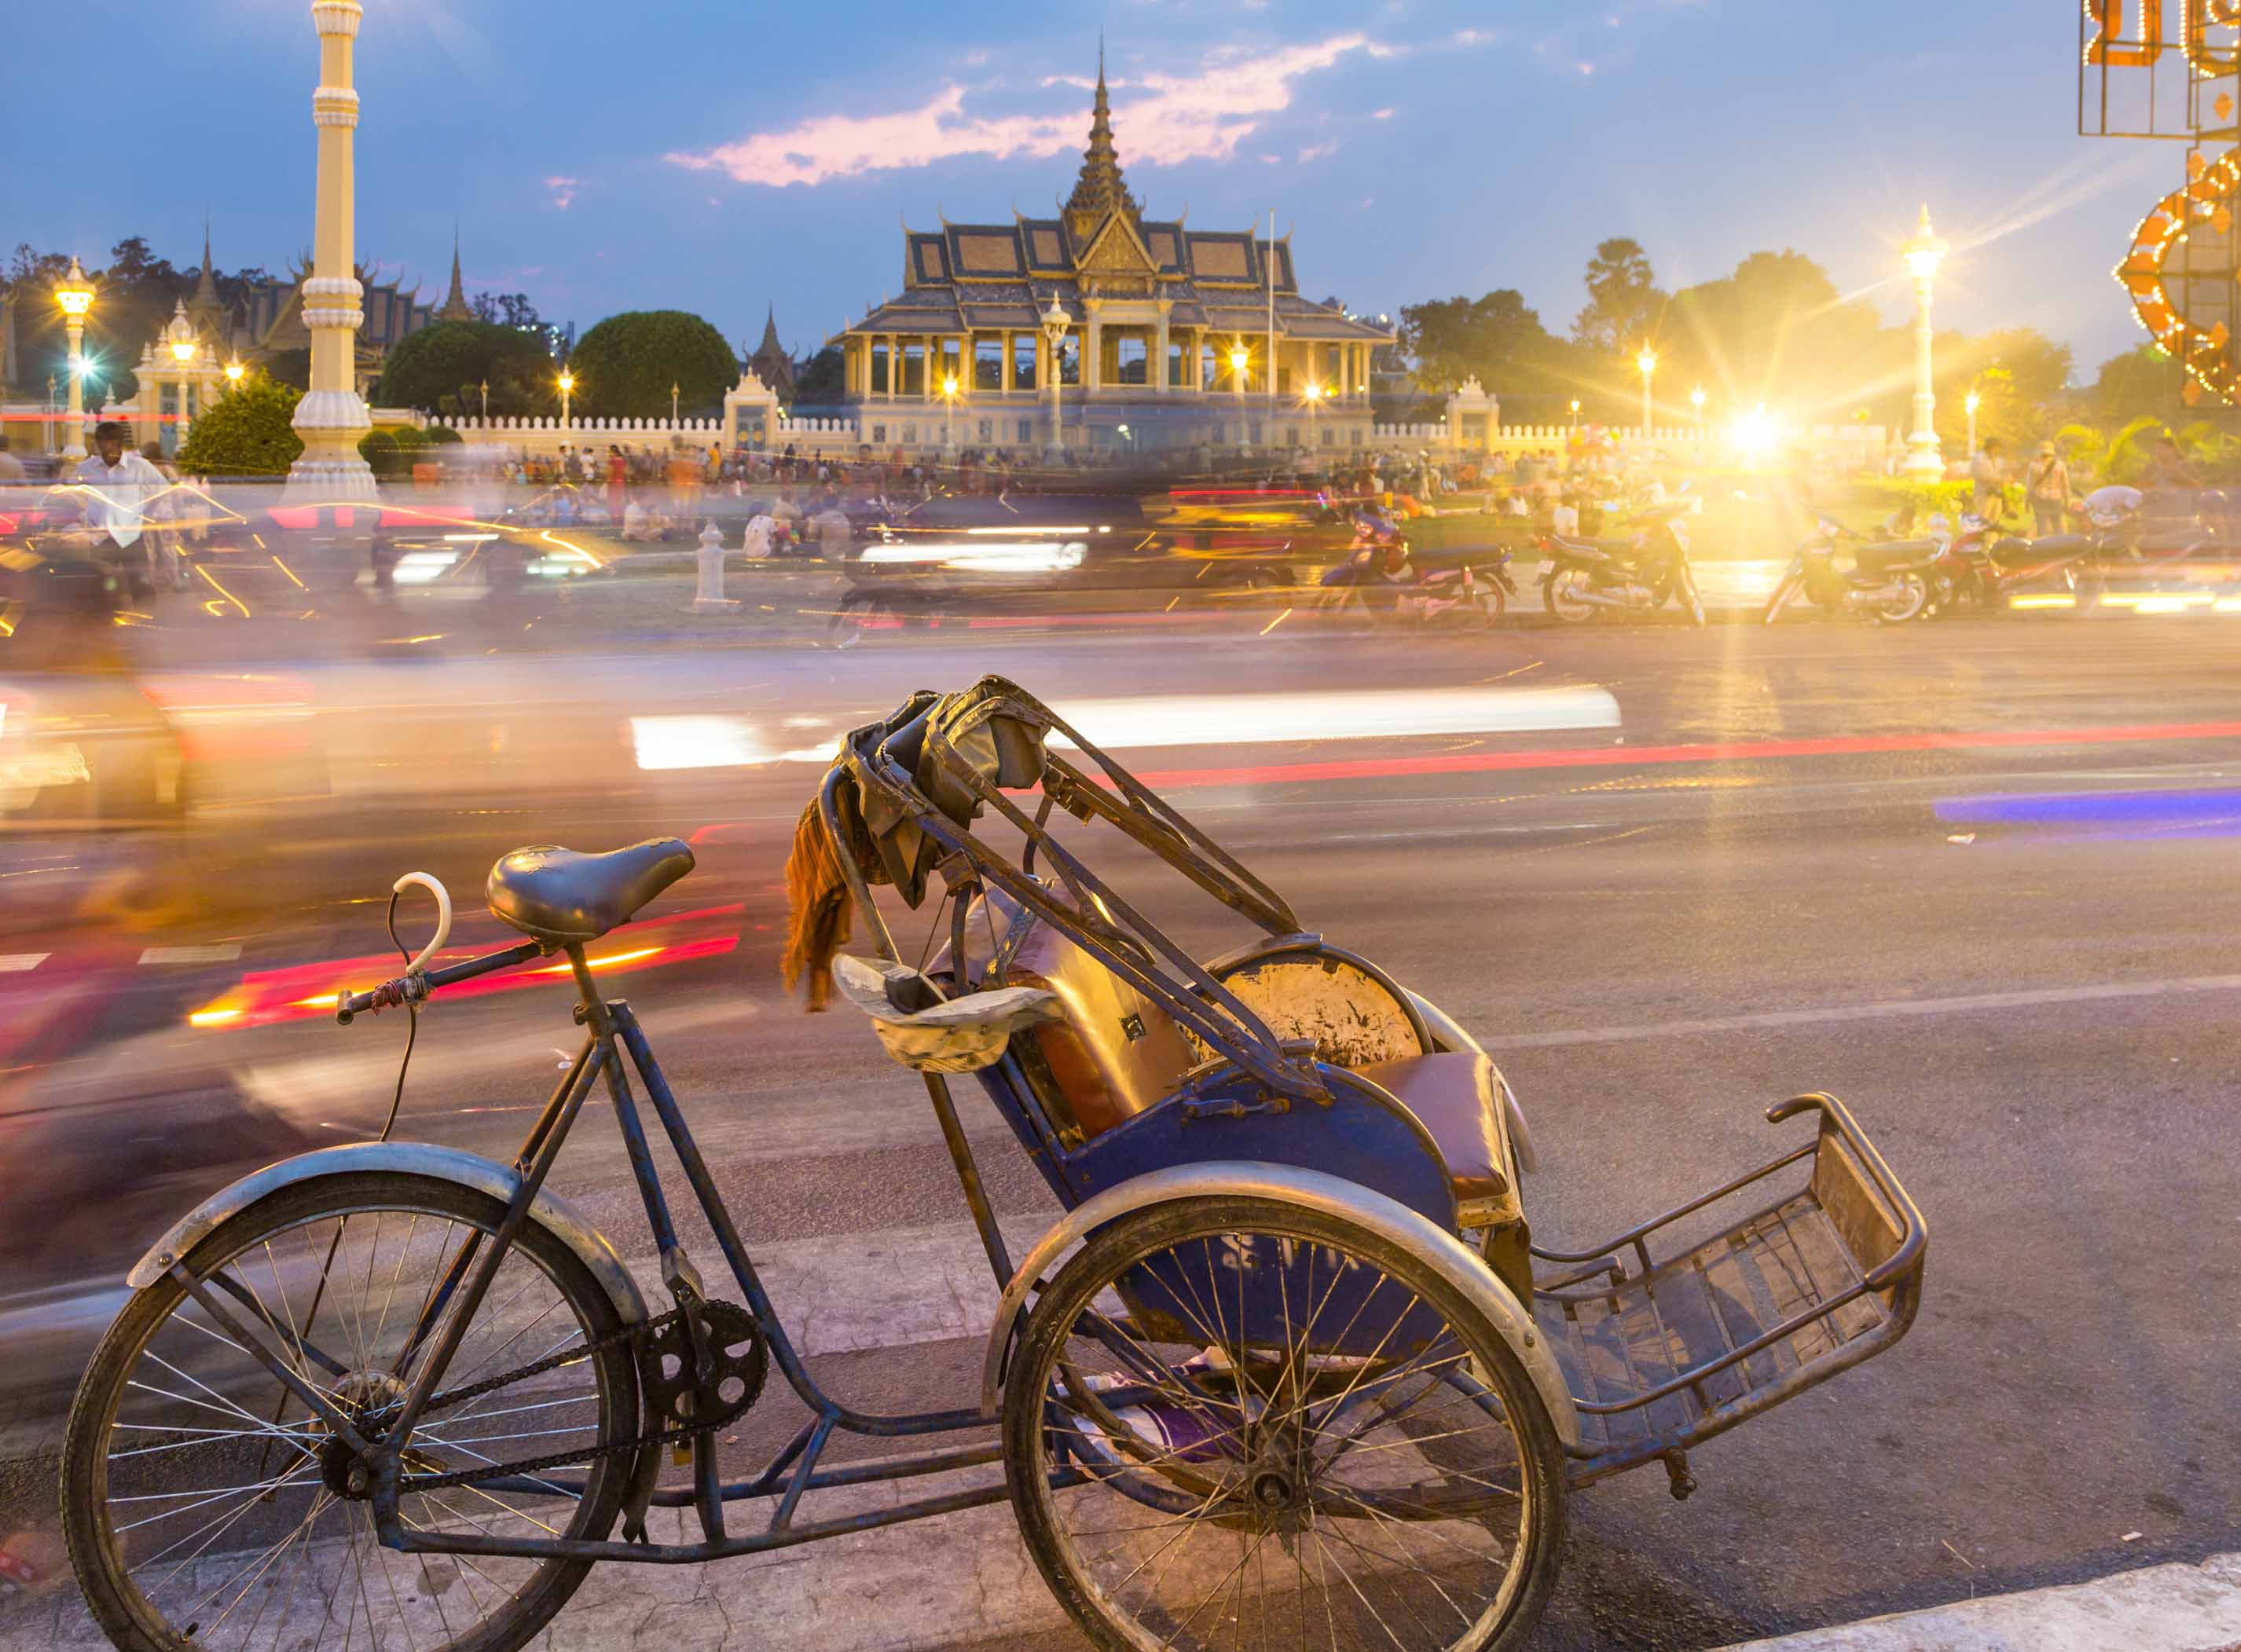 HOW TO SEE THE BEST OF PHNOM PENH IN ONE DAY